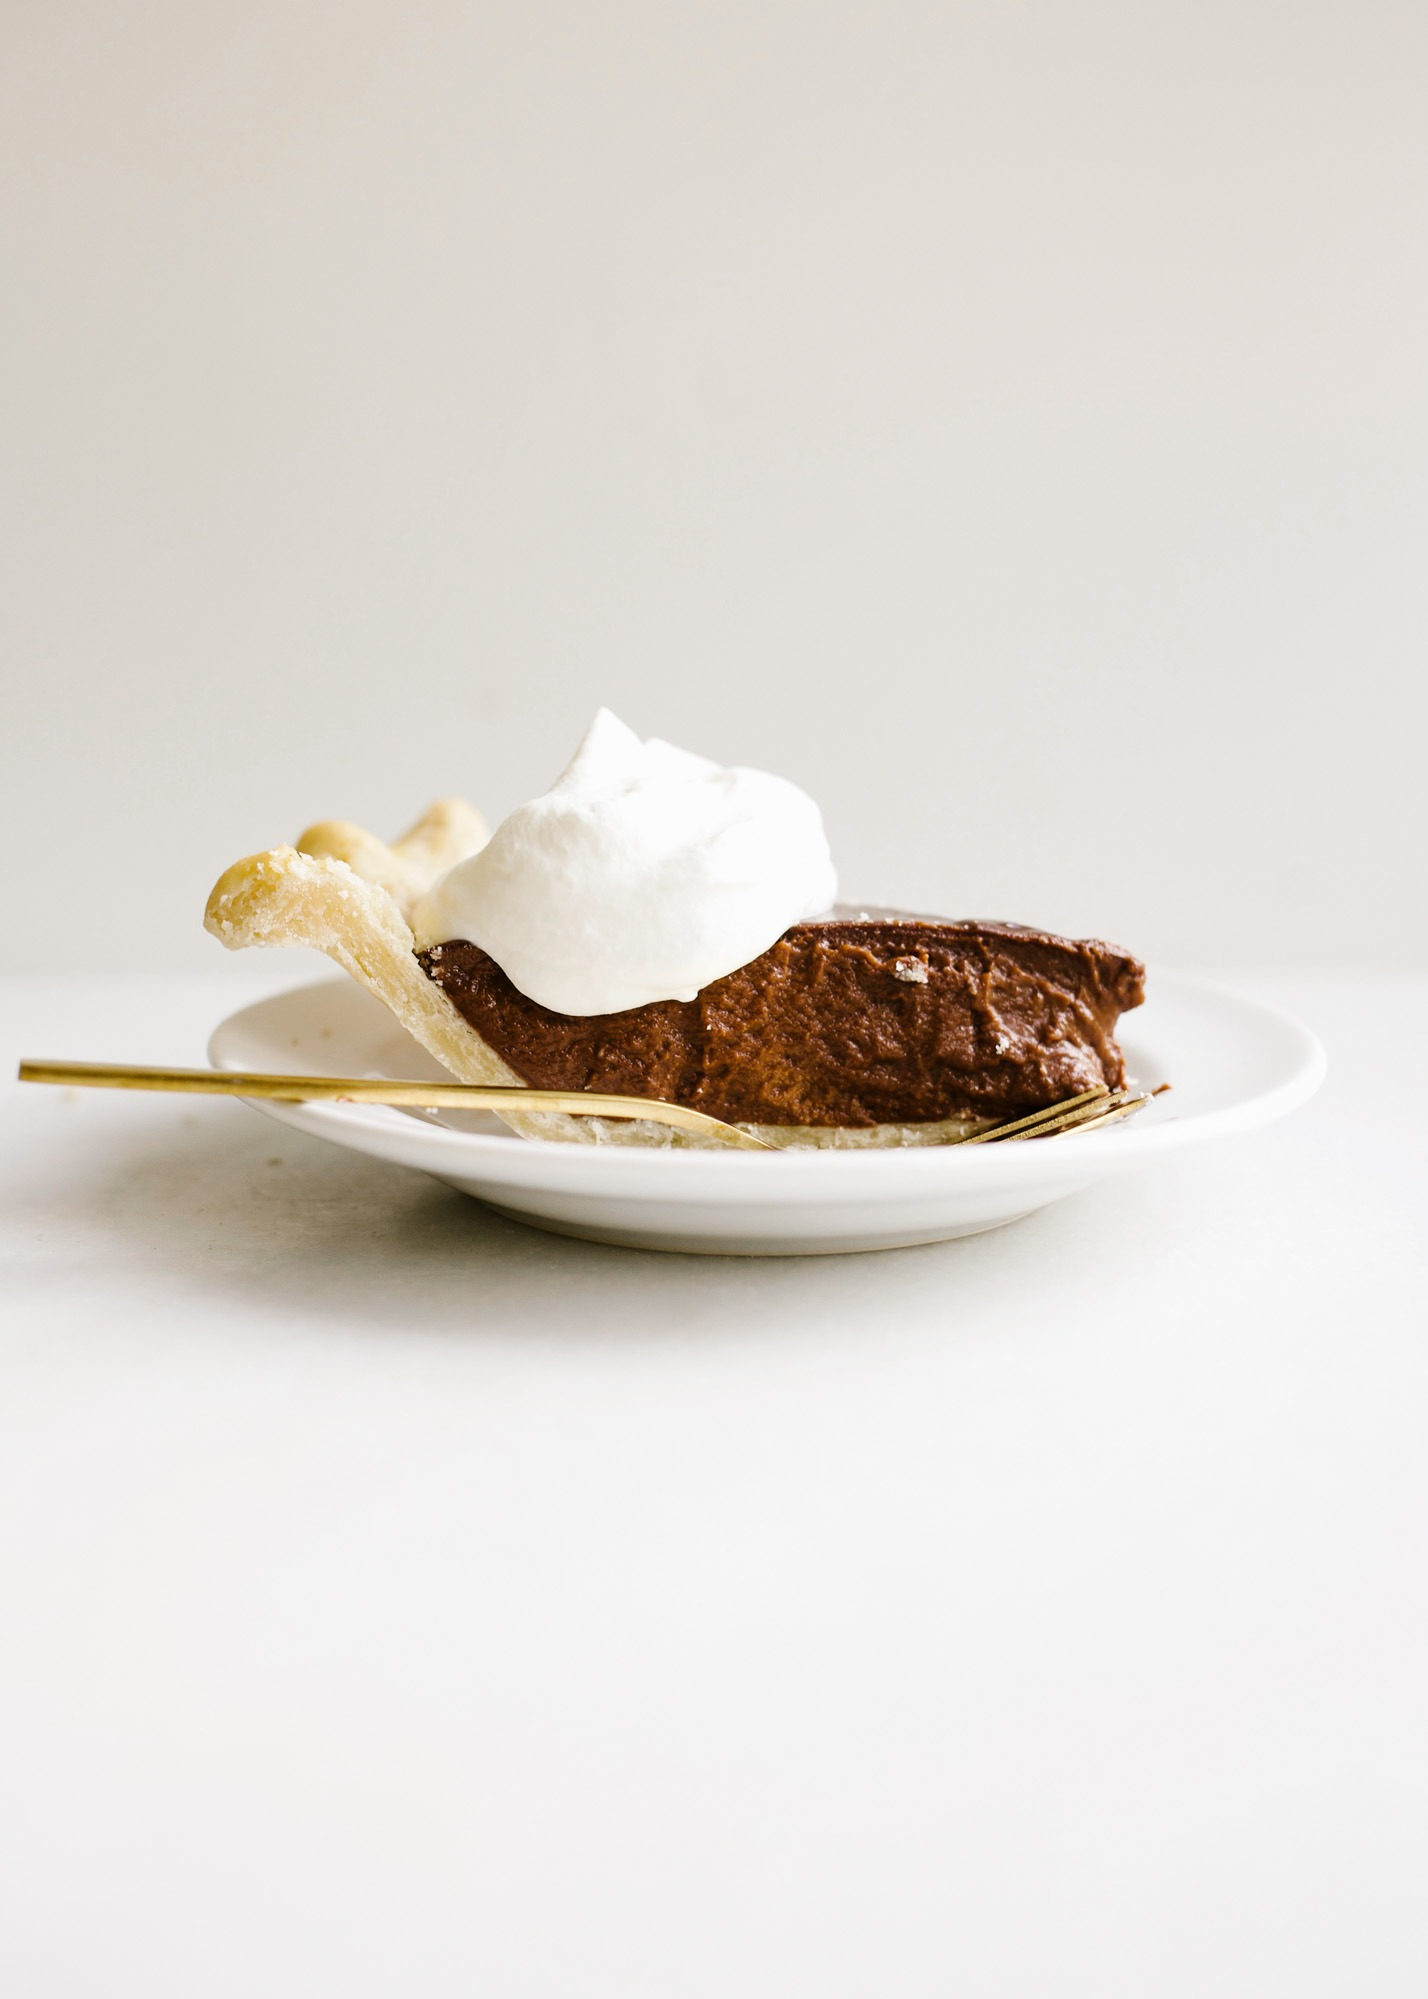 Chocolate Pudding Pie by Wood and Spoon blog. This is an old fashioned Southern chocolate cream pie with a flaky butter and shortening homemade pie crust and an egg custard filling made with cocoa powder! This is a stovetop pie that is a simple treat for a crowd all year round. Chocolate lovers will enjoy this rich dessert on thewoodandspoon.com